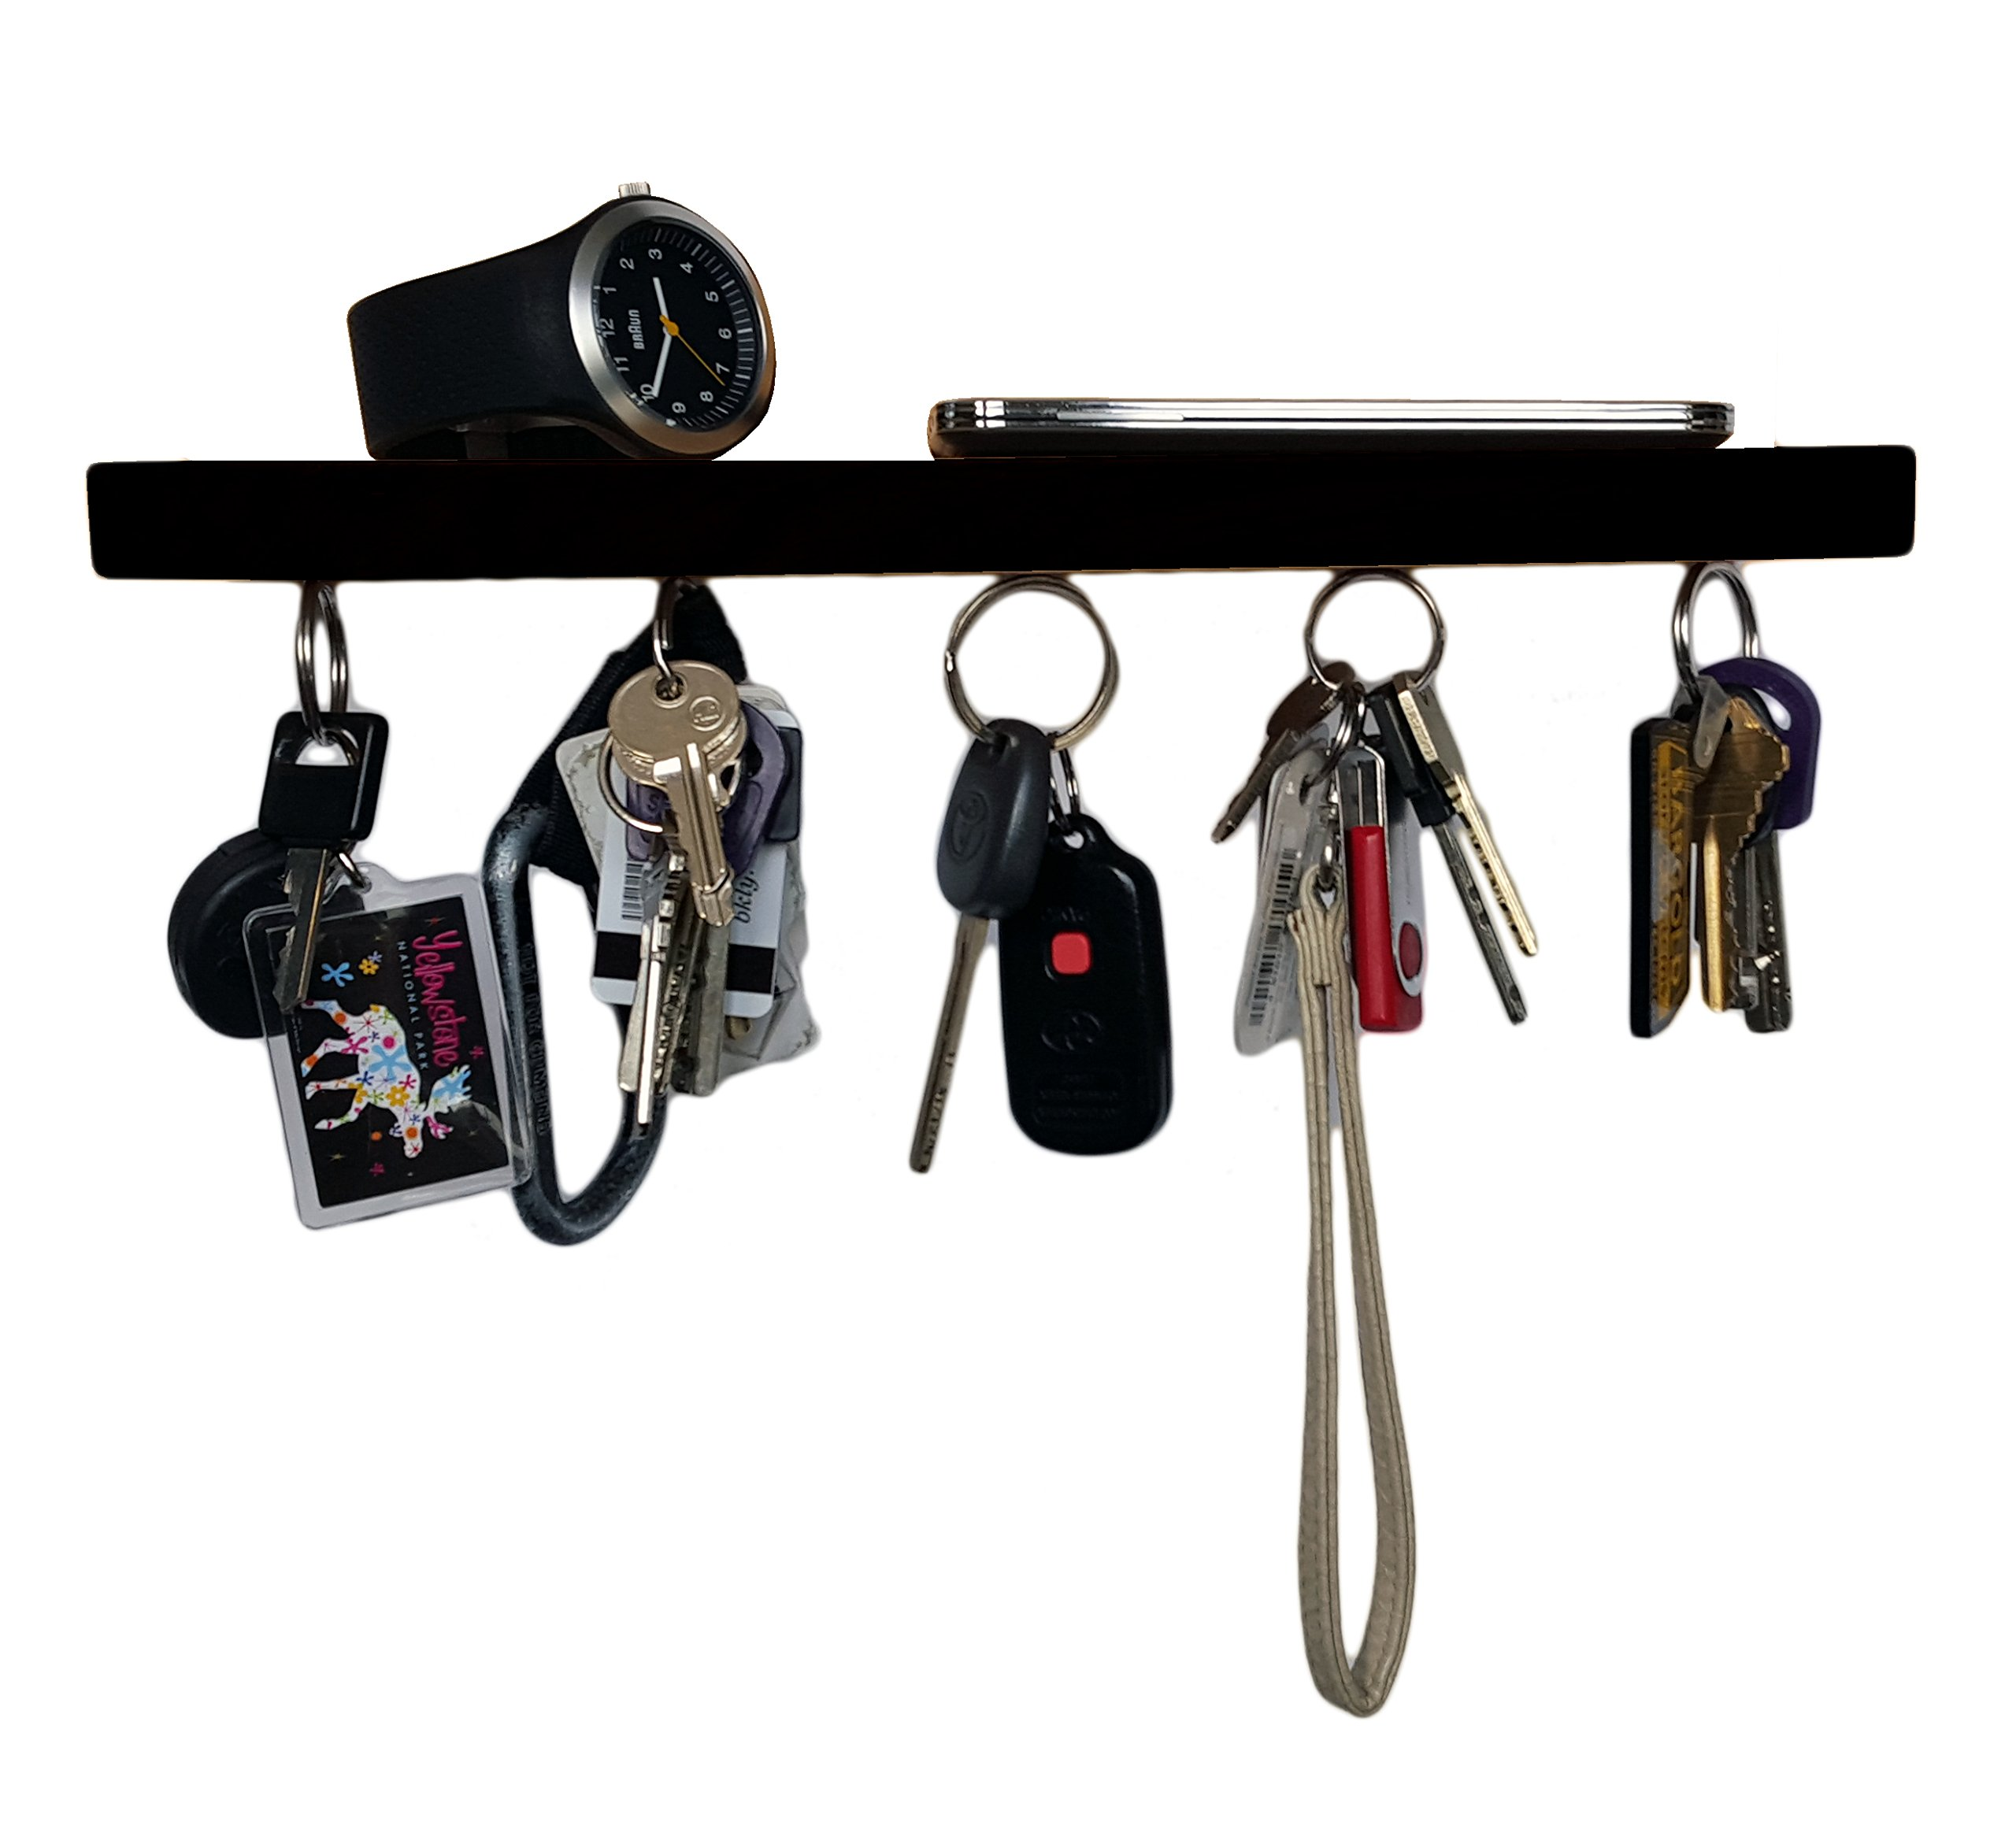 Brooklyn Basix Premium Magnetic ''bar'' Wood Key Ring Holder and Shelf for Mail, Letter, Phone, Wallet, Sunglasses Wall Mounted Organizer Perfect for Mudroom, Entryway, Foyer, Kitchen (Black)